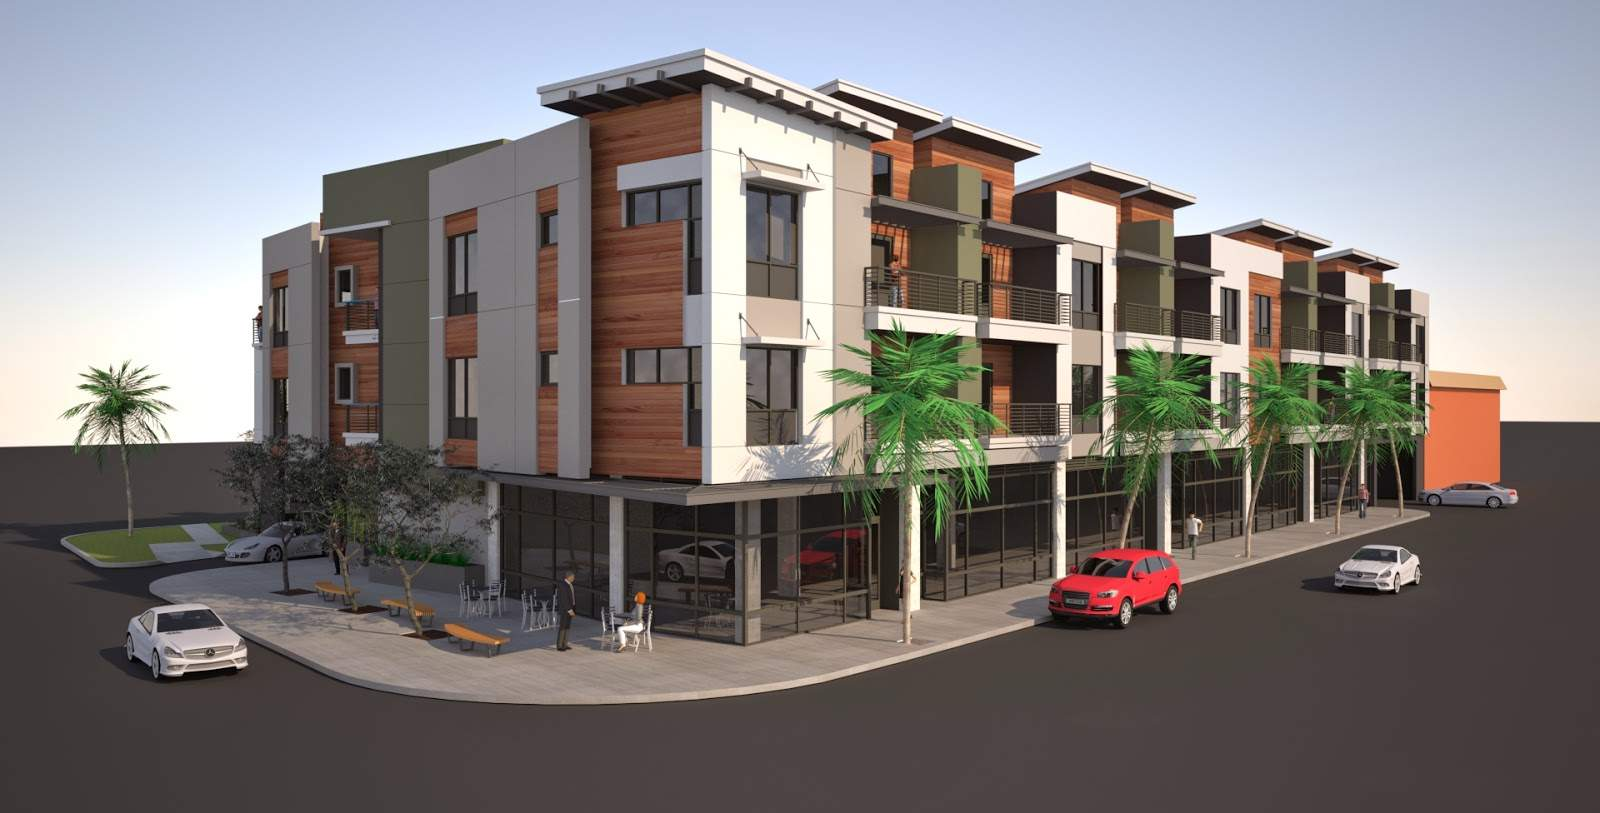 Building Los Angeles Mixed Oliver Apartments Rise Culver City